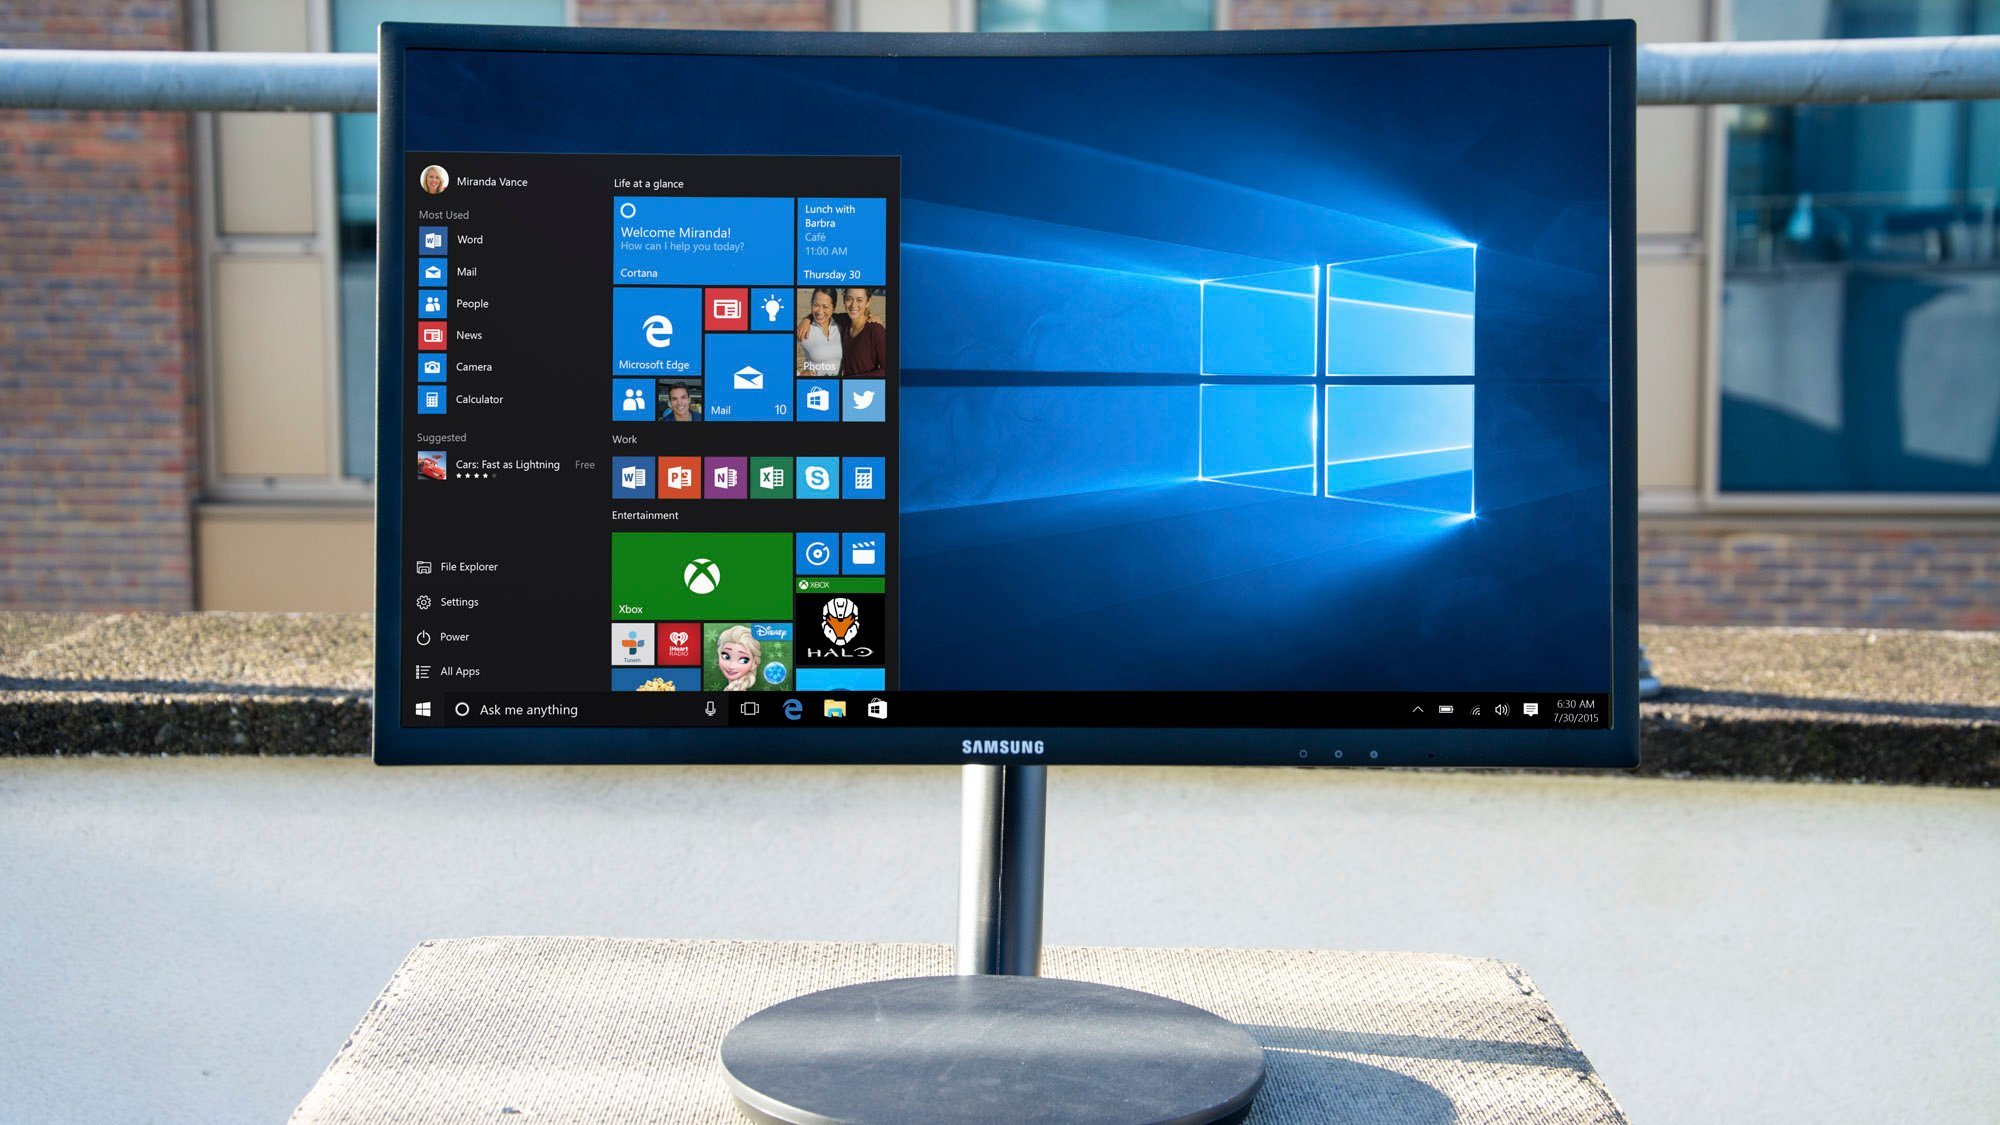 Samsung C24fg70 Review A Storming Gaming Monitor With Top